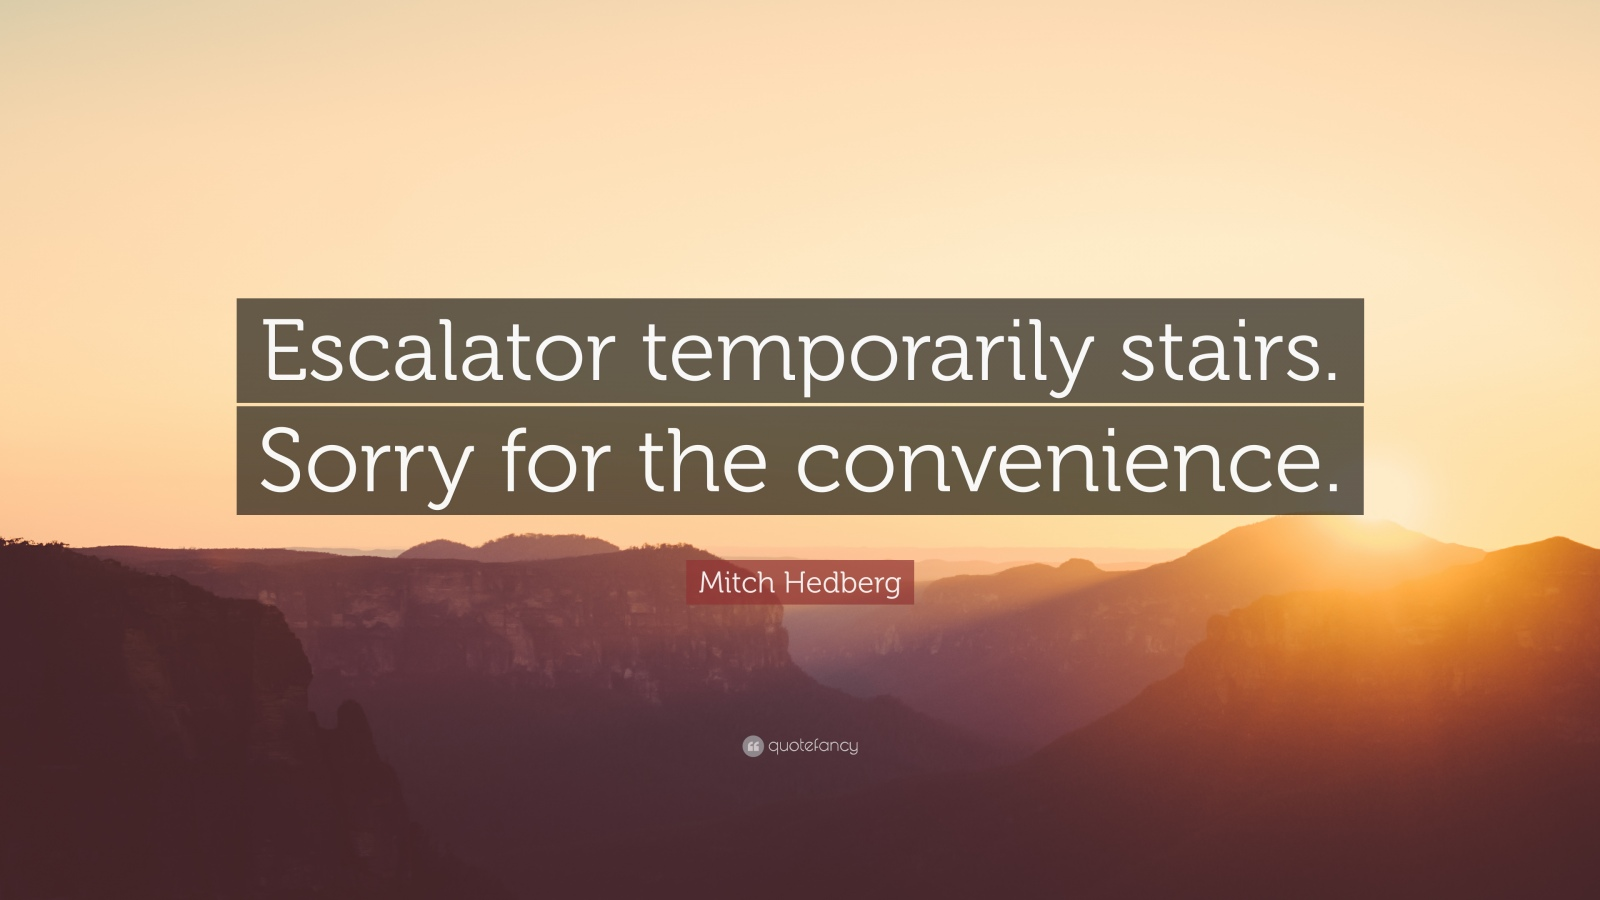 516945-mitch-hedberg-quote-escalator-temporarily-stairs-sorry-for-the